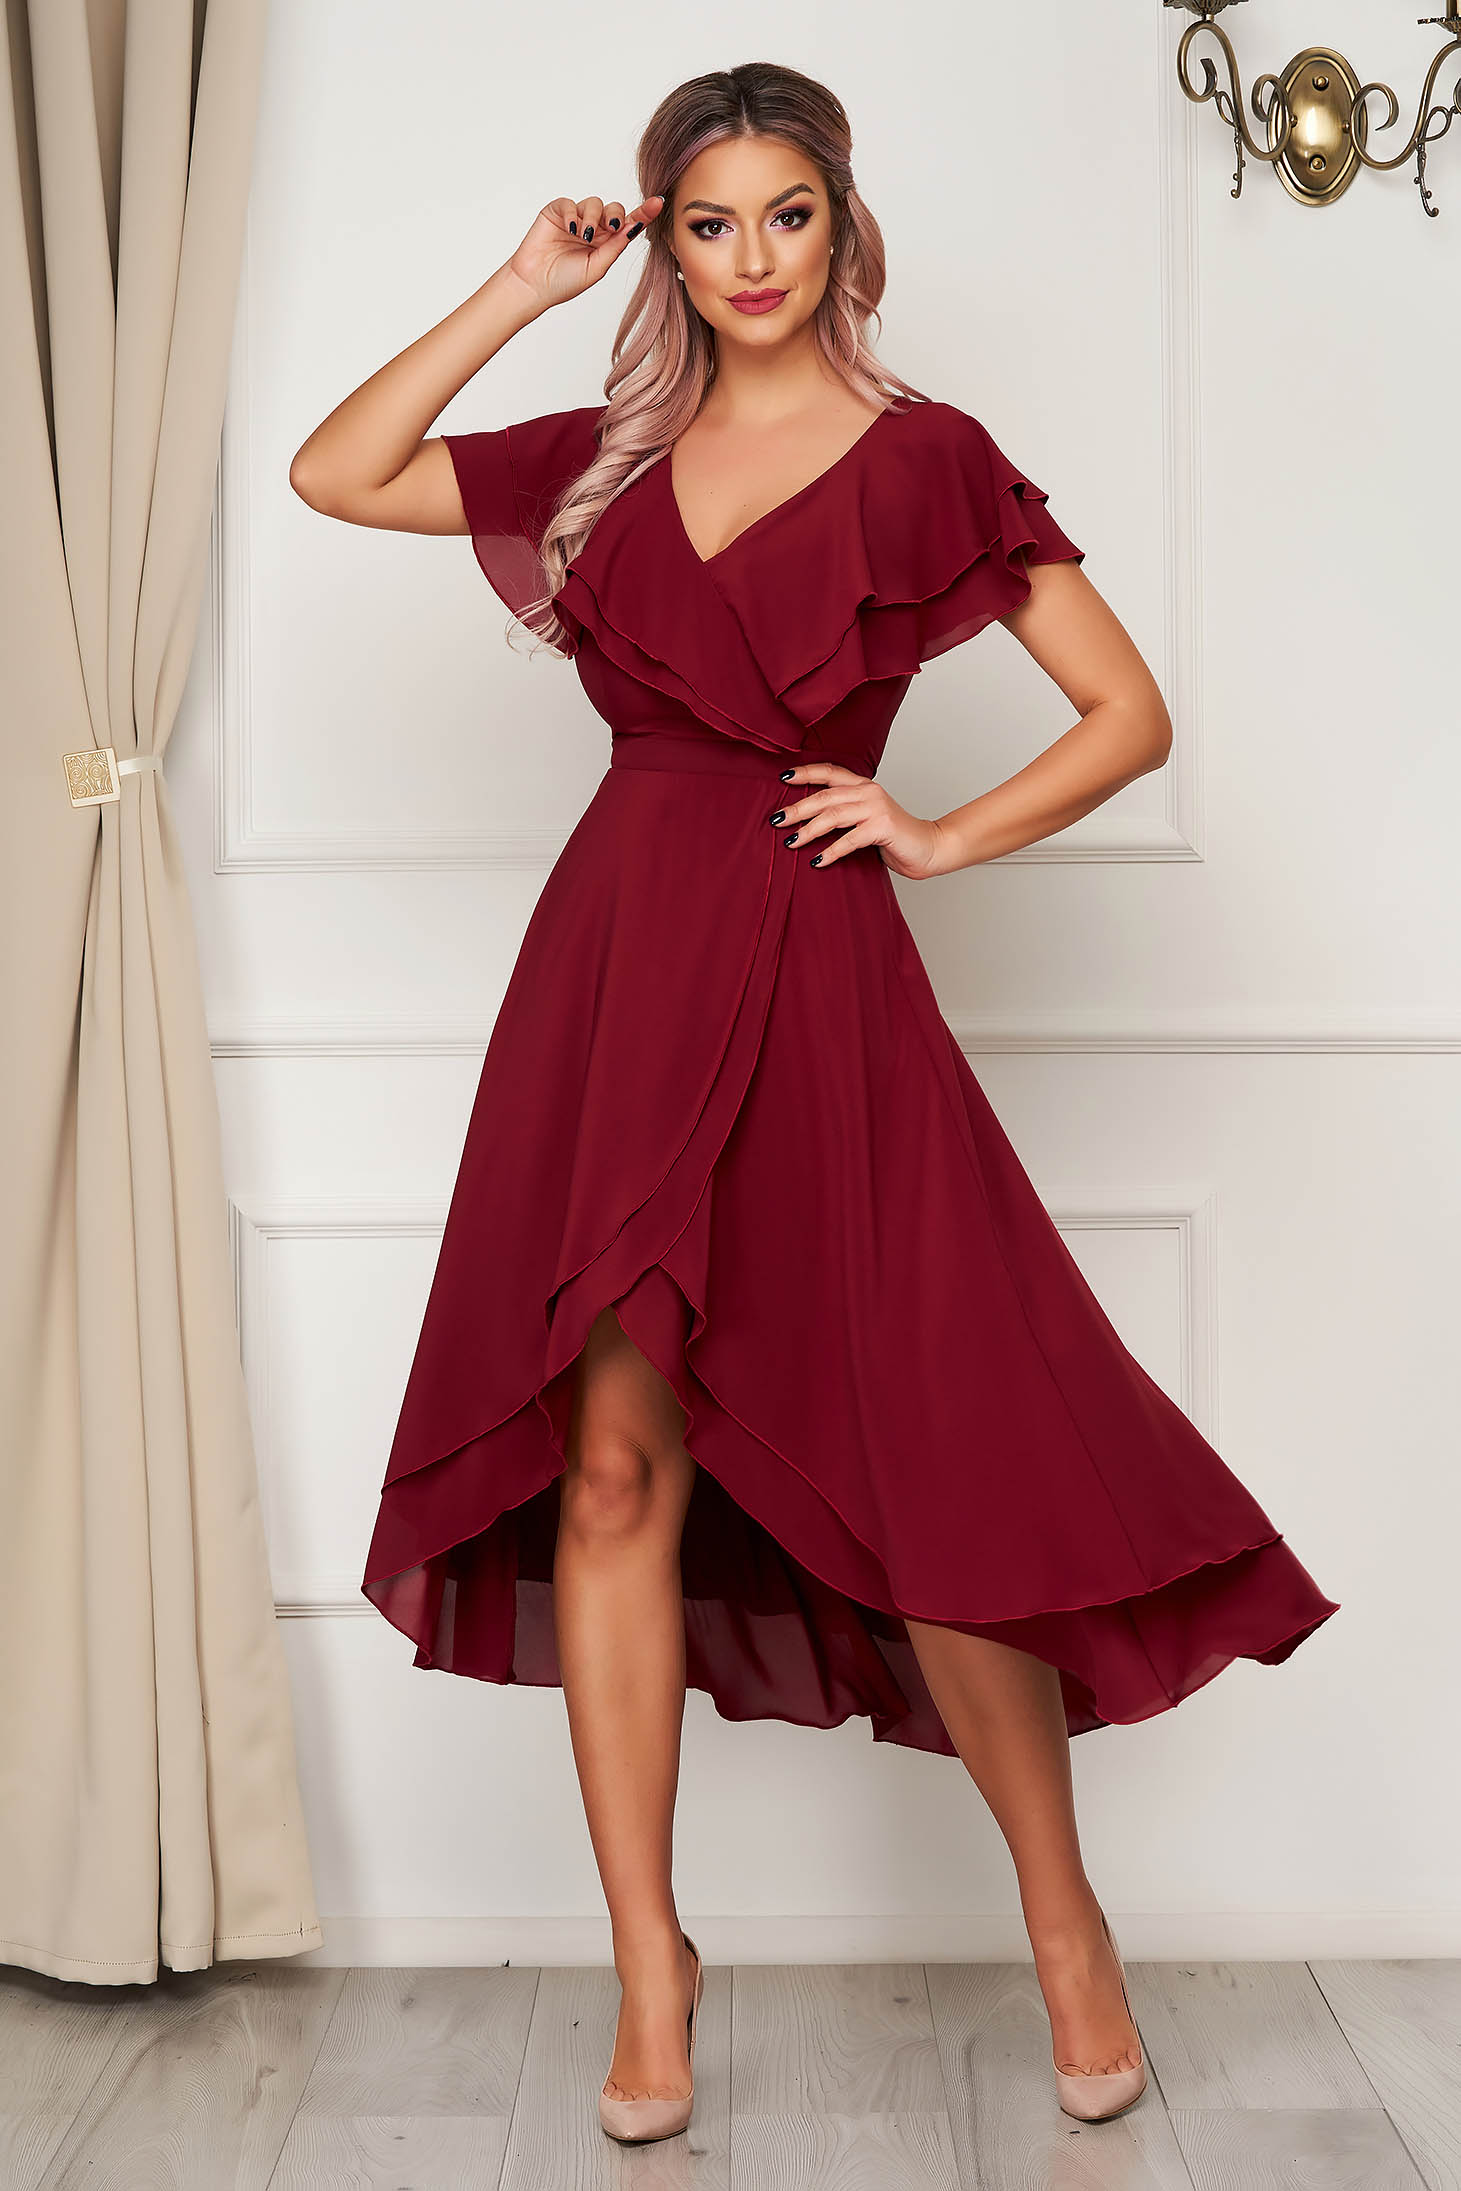 Dress StarShinerS burgundy long occasional from veil fabric with ruffle details